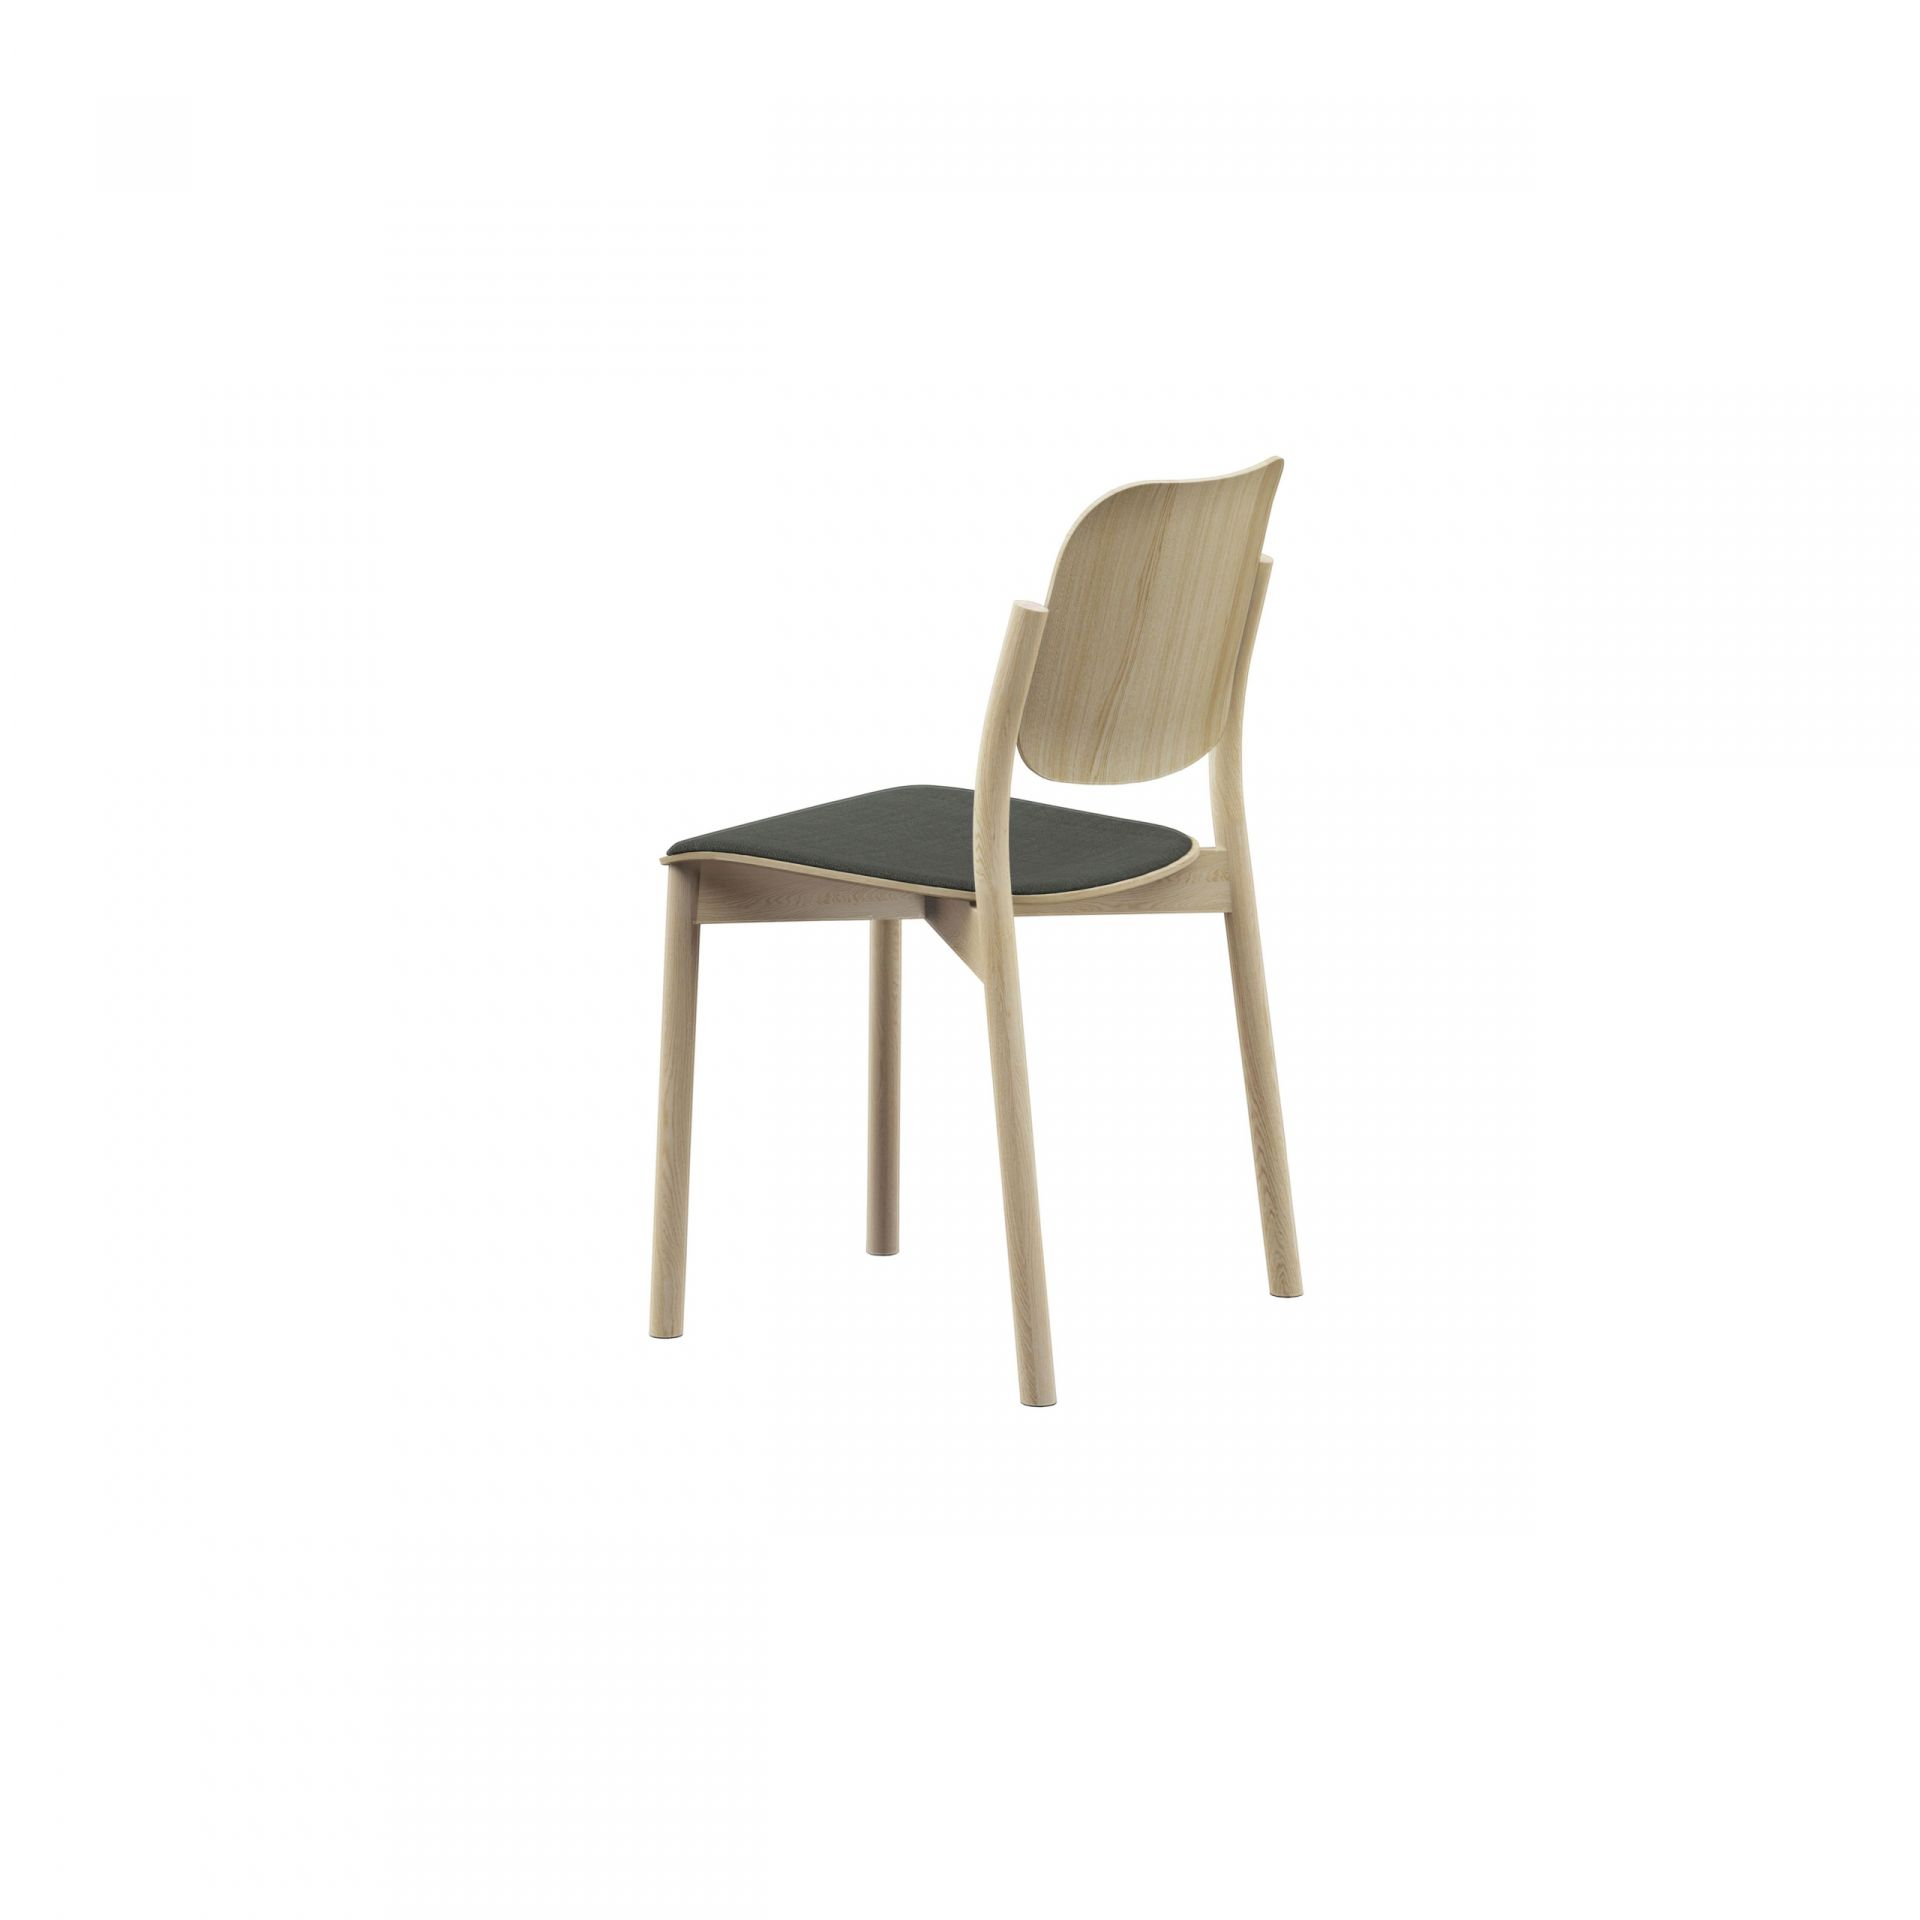 Zoe Wooden chair product image 4